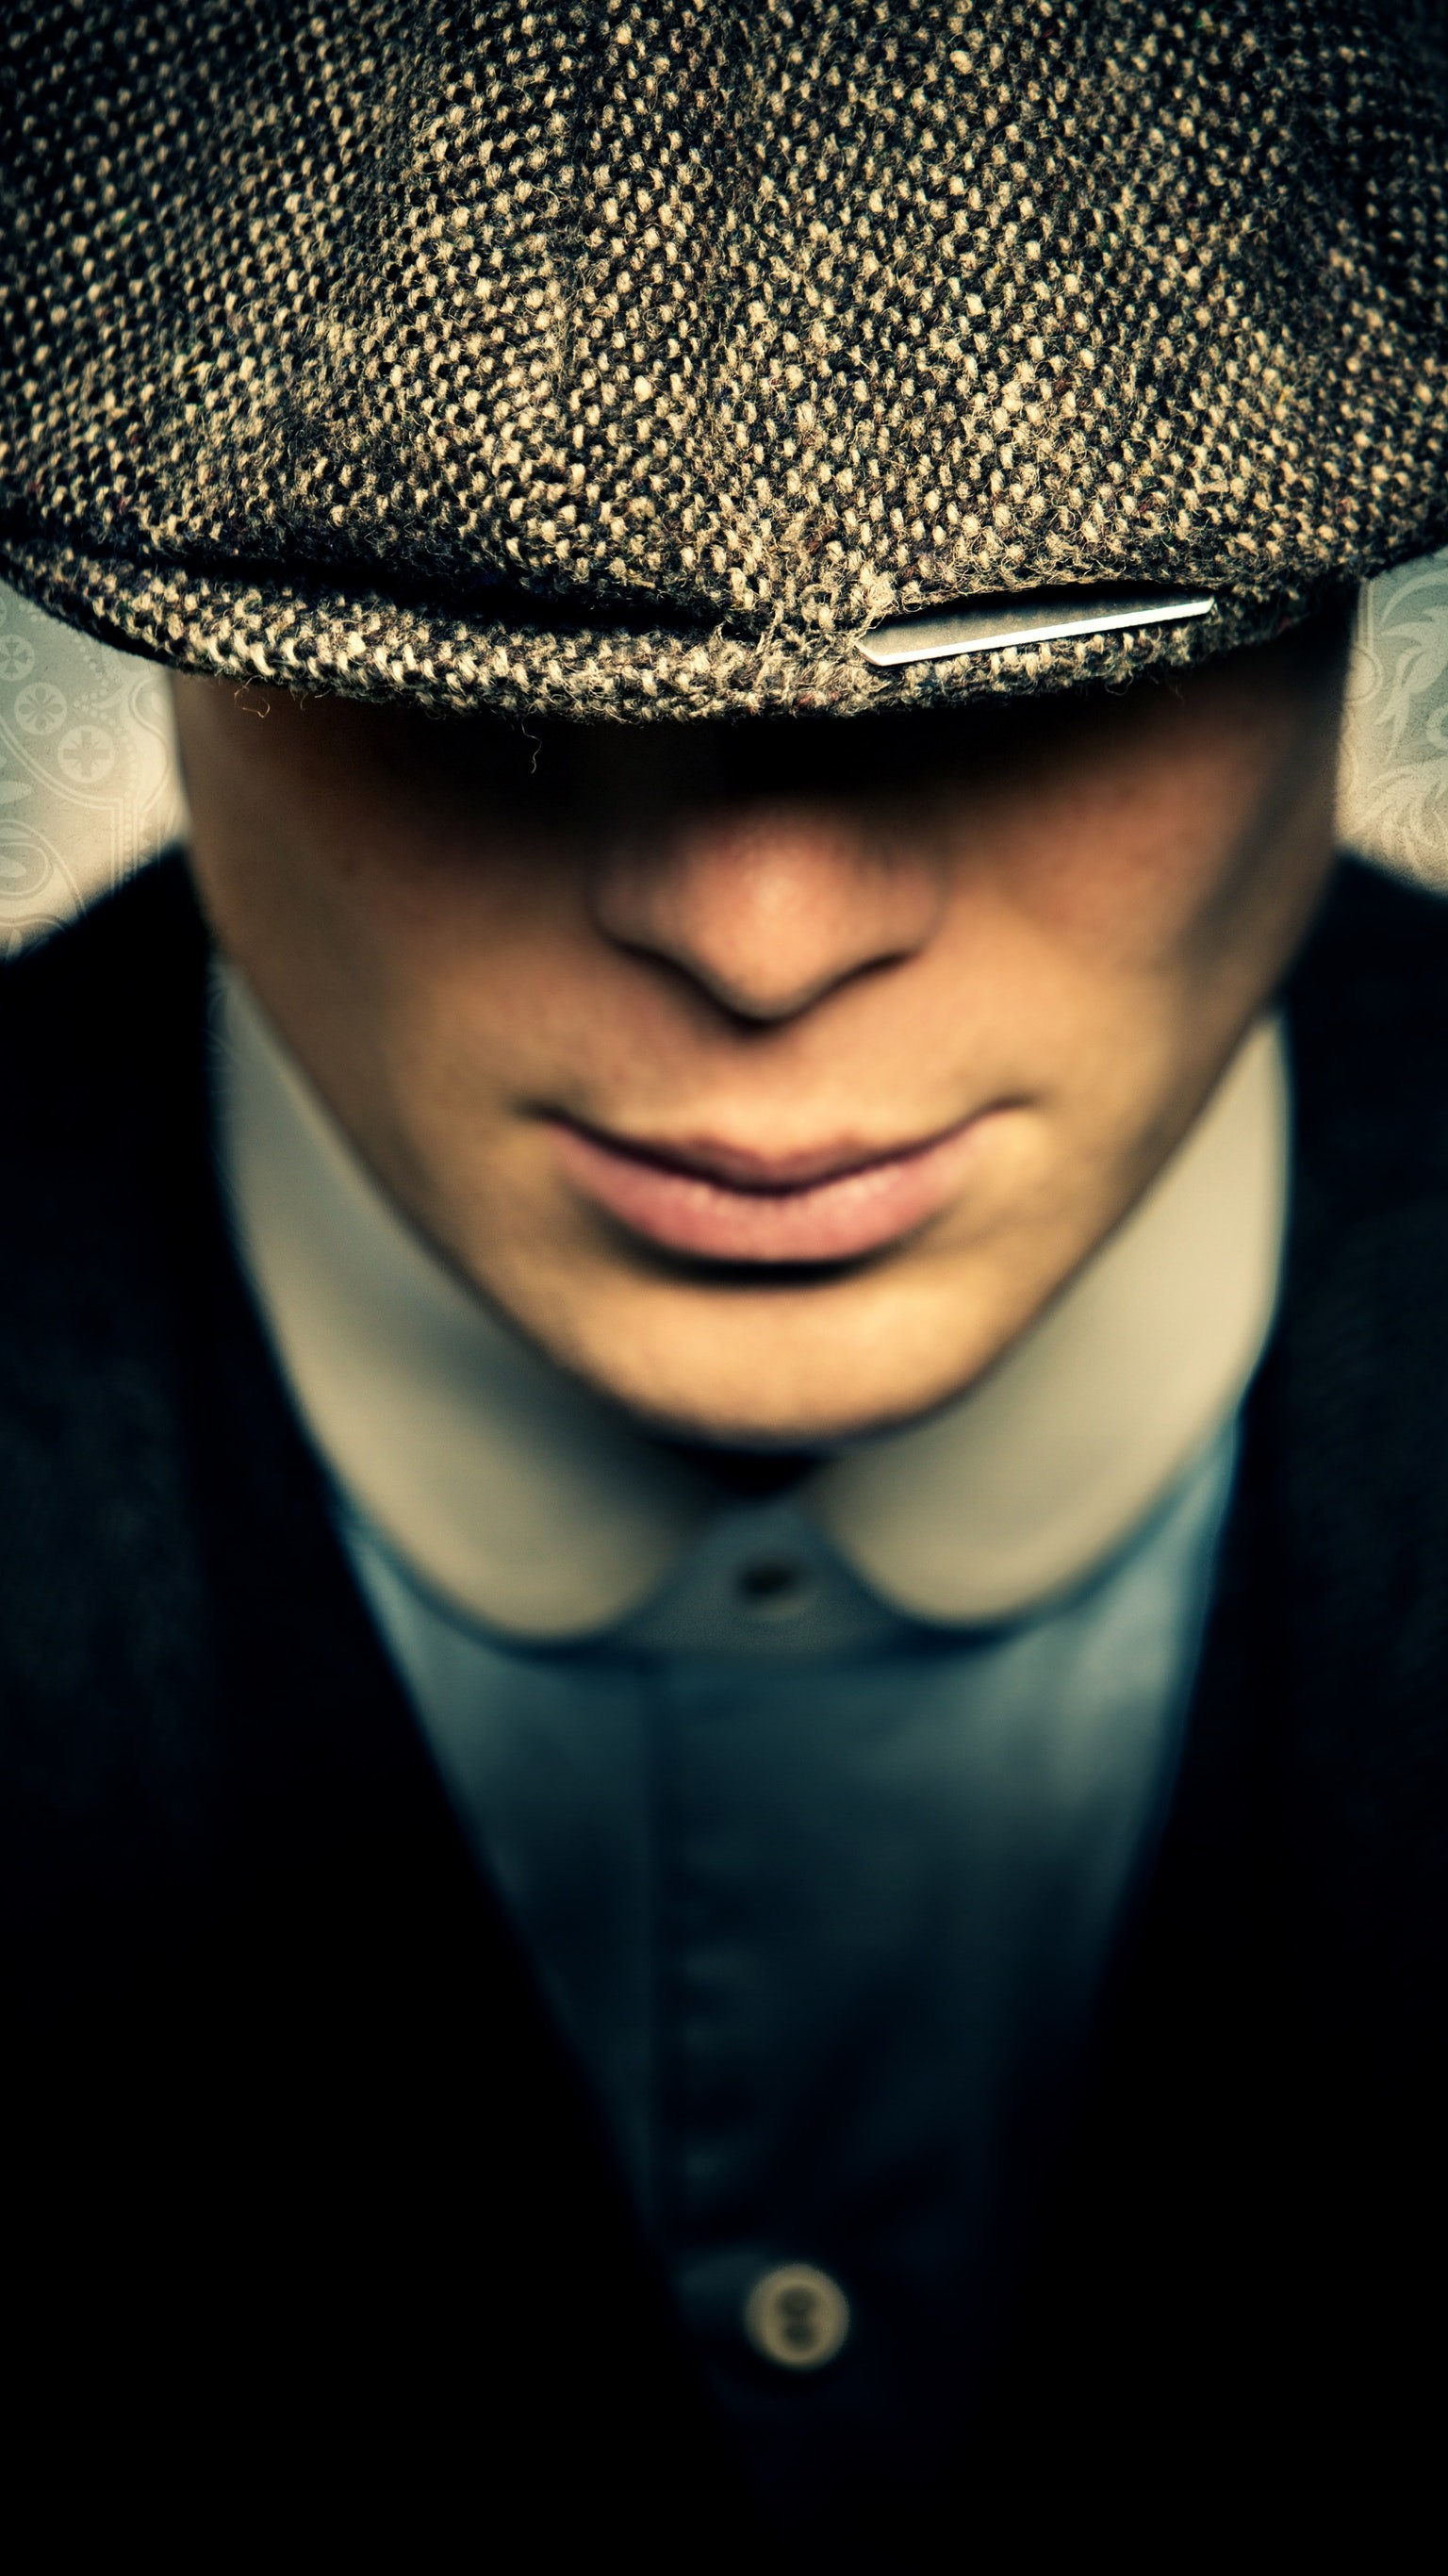 1098942-peaky-blinders-wallpapers-1536x2732-for-iphone-6.jpg